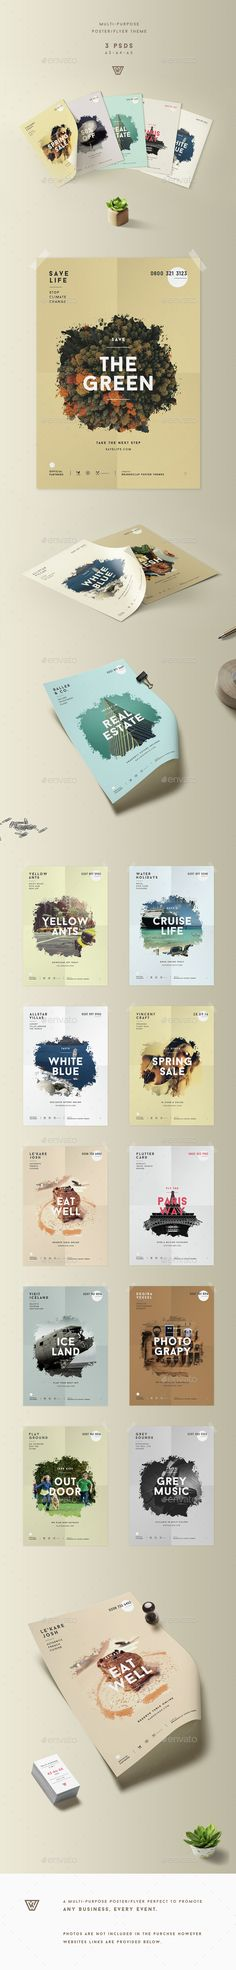 Creative Promotional Poster / PSD Flyer  Template • Only available here ➝ http://graphicriver.net/item/creative-promotional-poster-flyer/15131152?ref=pxcr